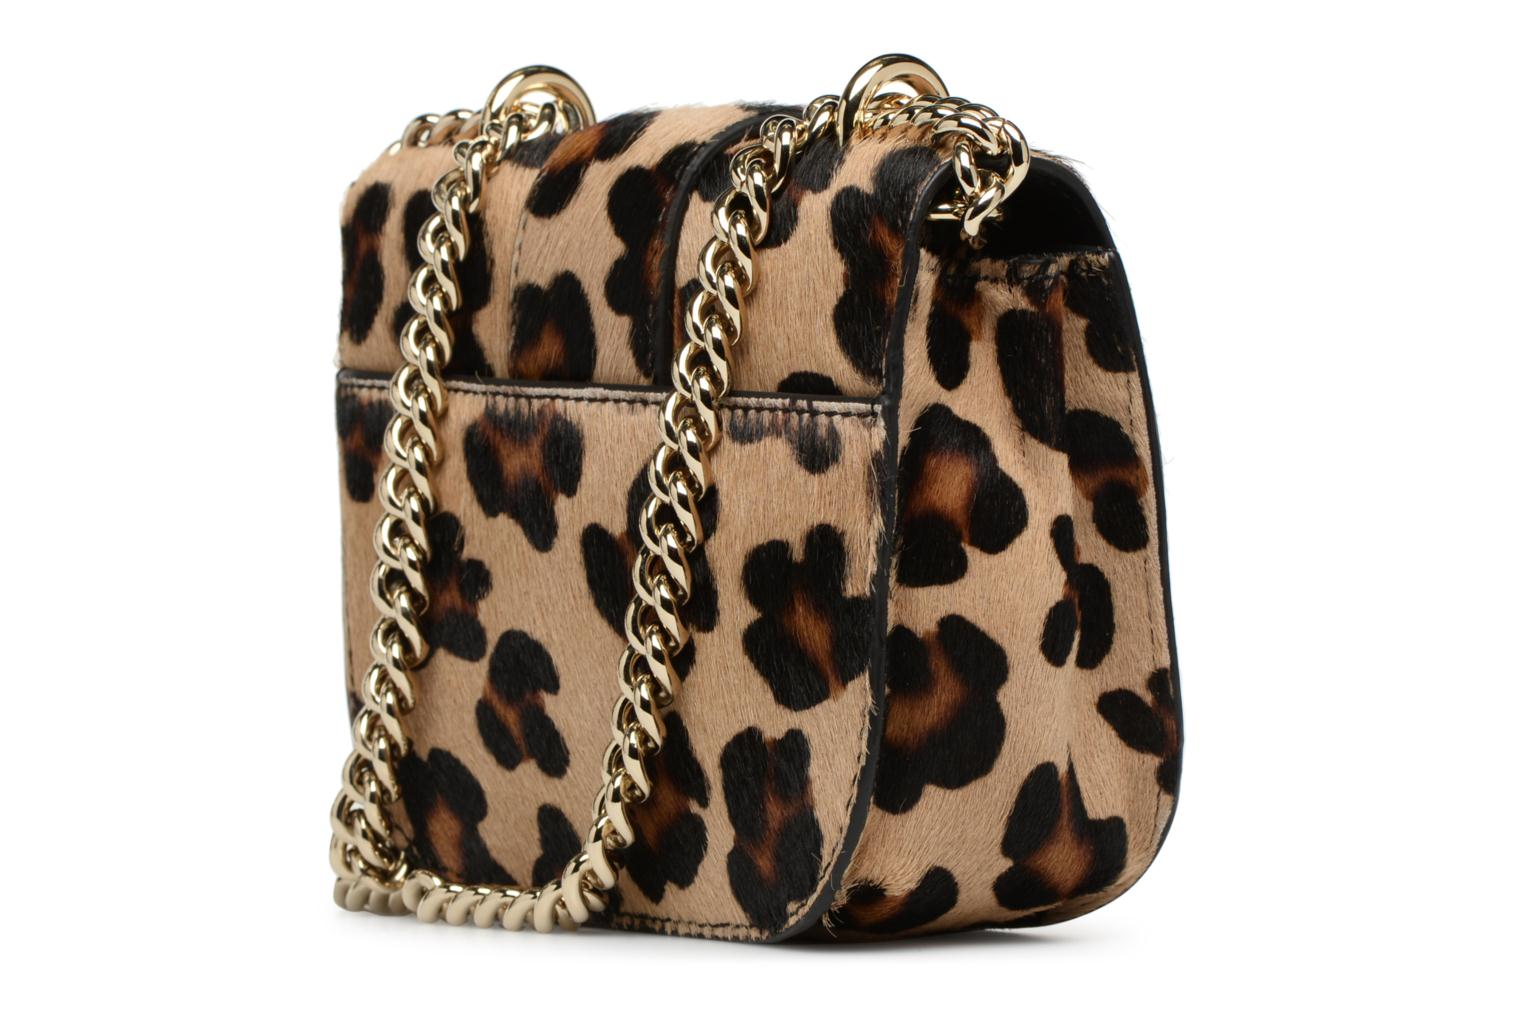 03 Tila 12 TMM16 March LEOPARD UZZq7XB